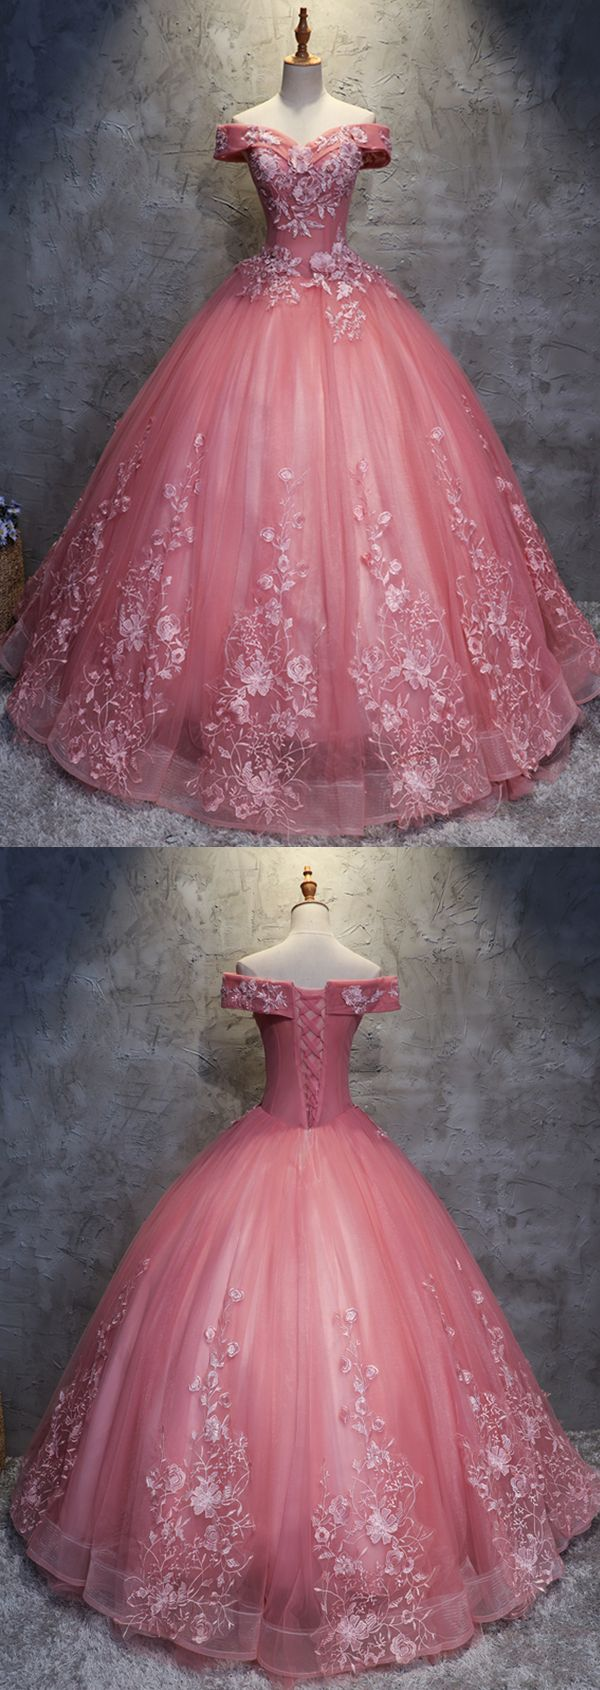 Ball Gown Off-the-Shoulder Floor-Length Pink Wedding Dress with Appliques